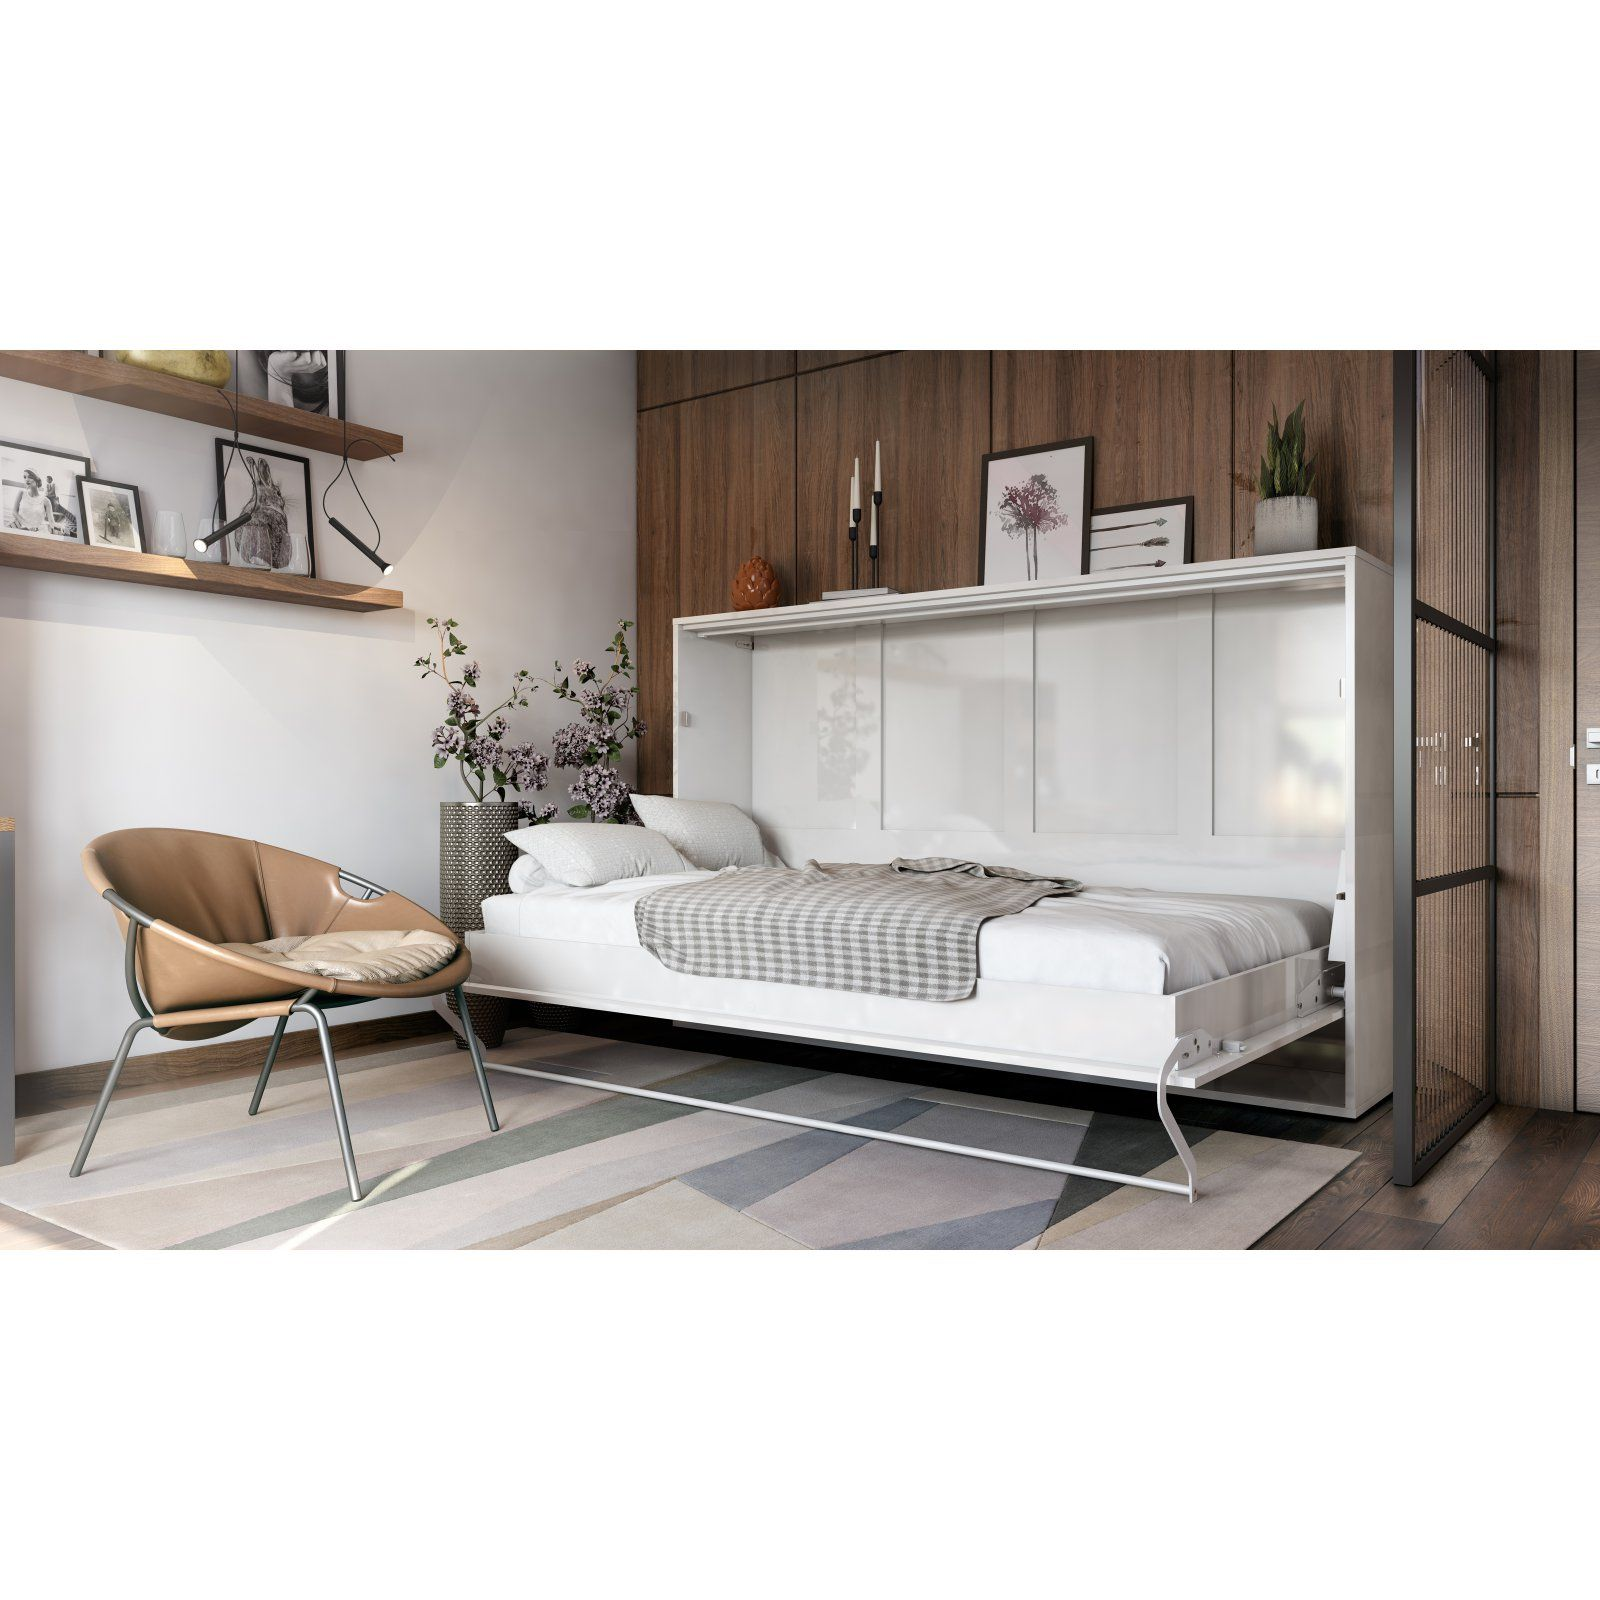 Wall Bed FLASH SALE Wall bed, Bed wall, Bedroom makeover